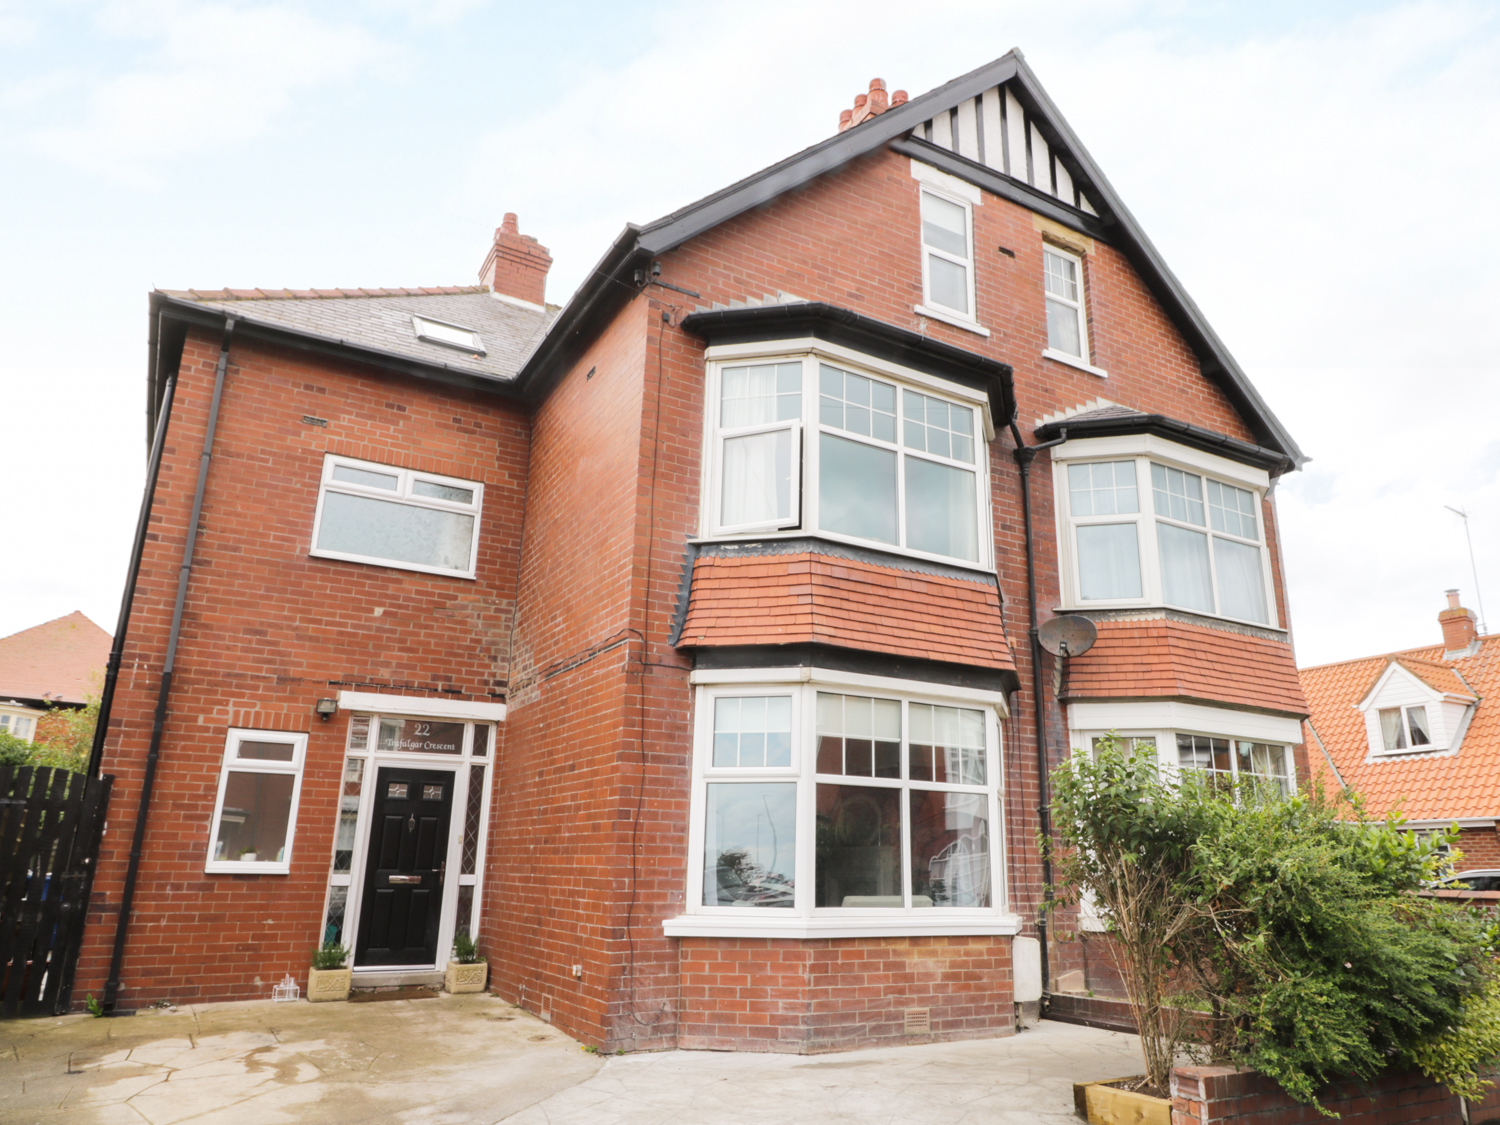 4 bedroom Cottage for rent in Bridlington